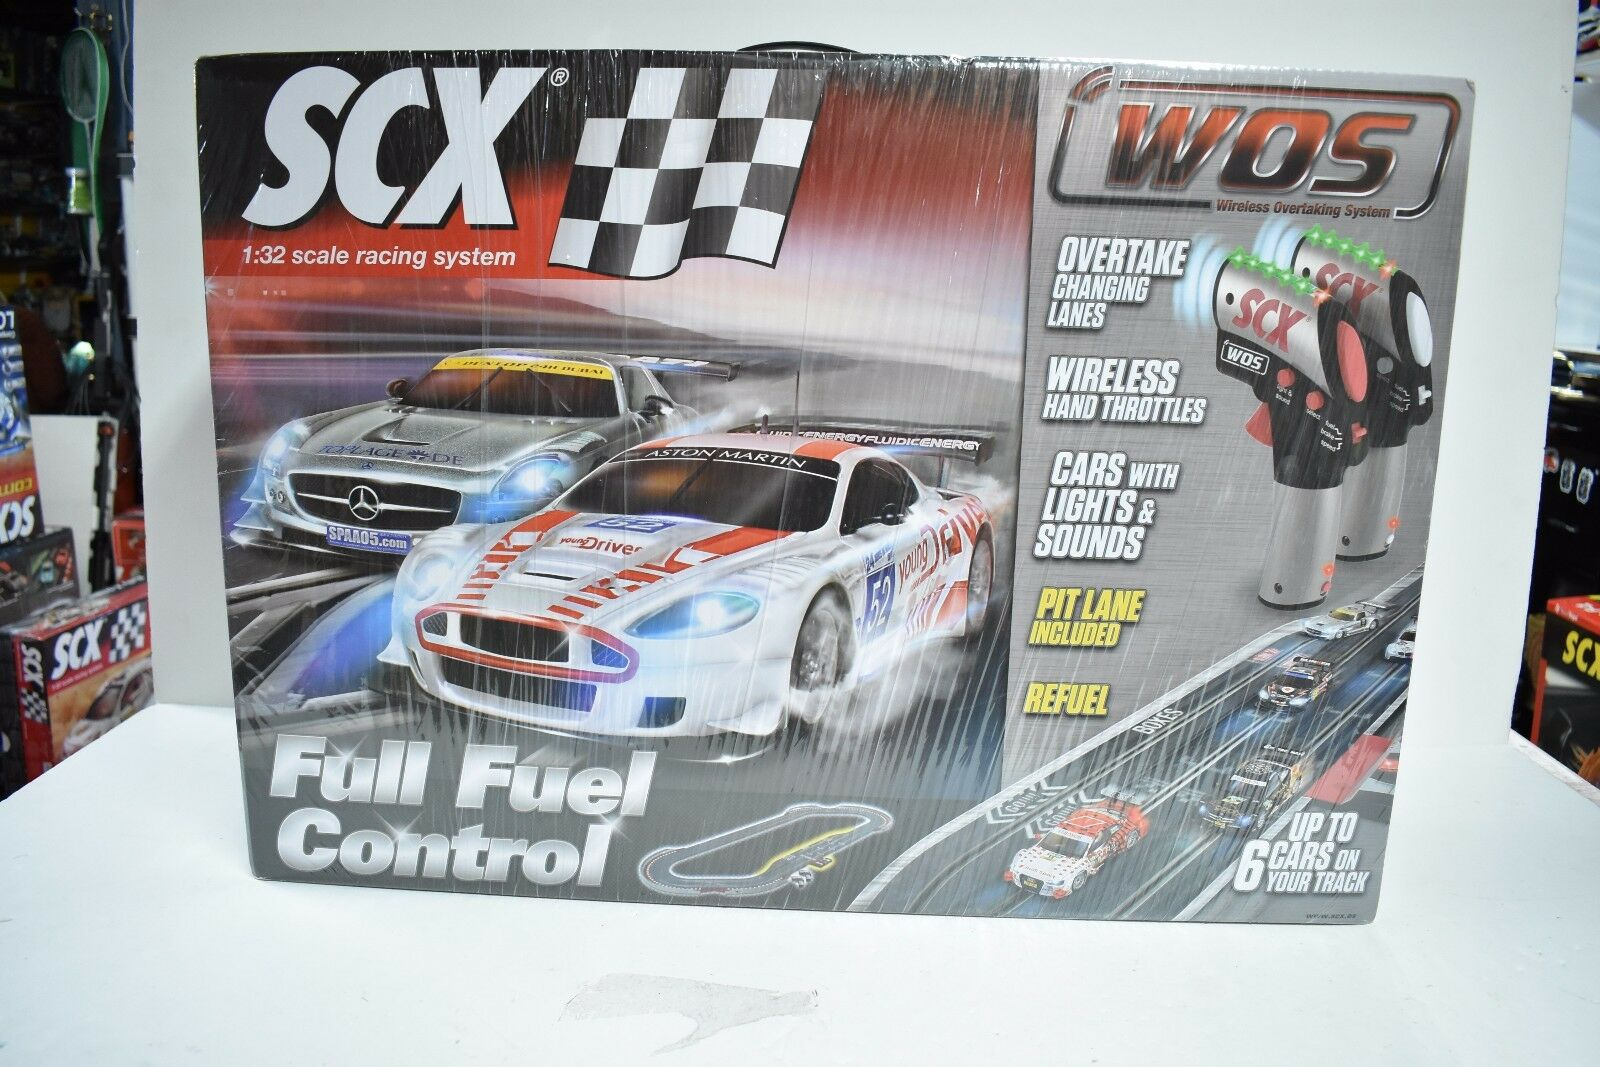 SCX WOS W10135X5U0 1 32 SCALE SLOT CAR FULL FUEL CONTROL DELUXE SET W  PIT LANES